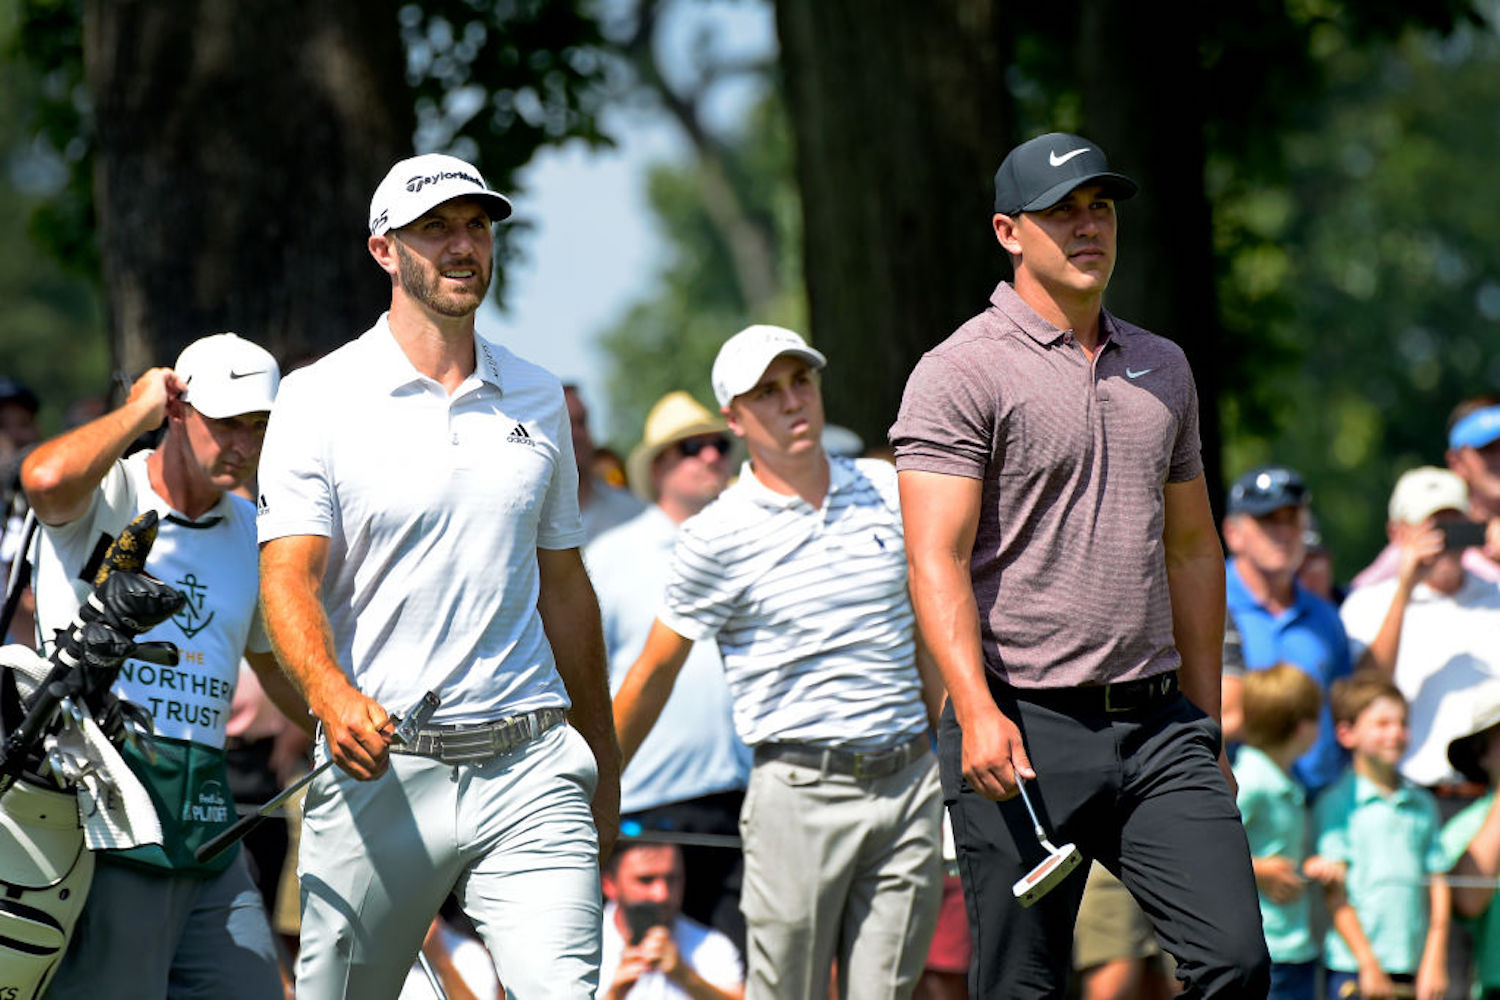 Brooks Koepka called out Dustin Johnson for his lack of majors a few weeks back, and Johnson responded with a historic run of golf.